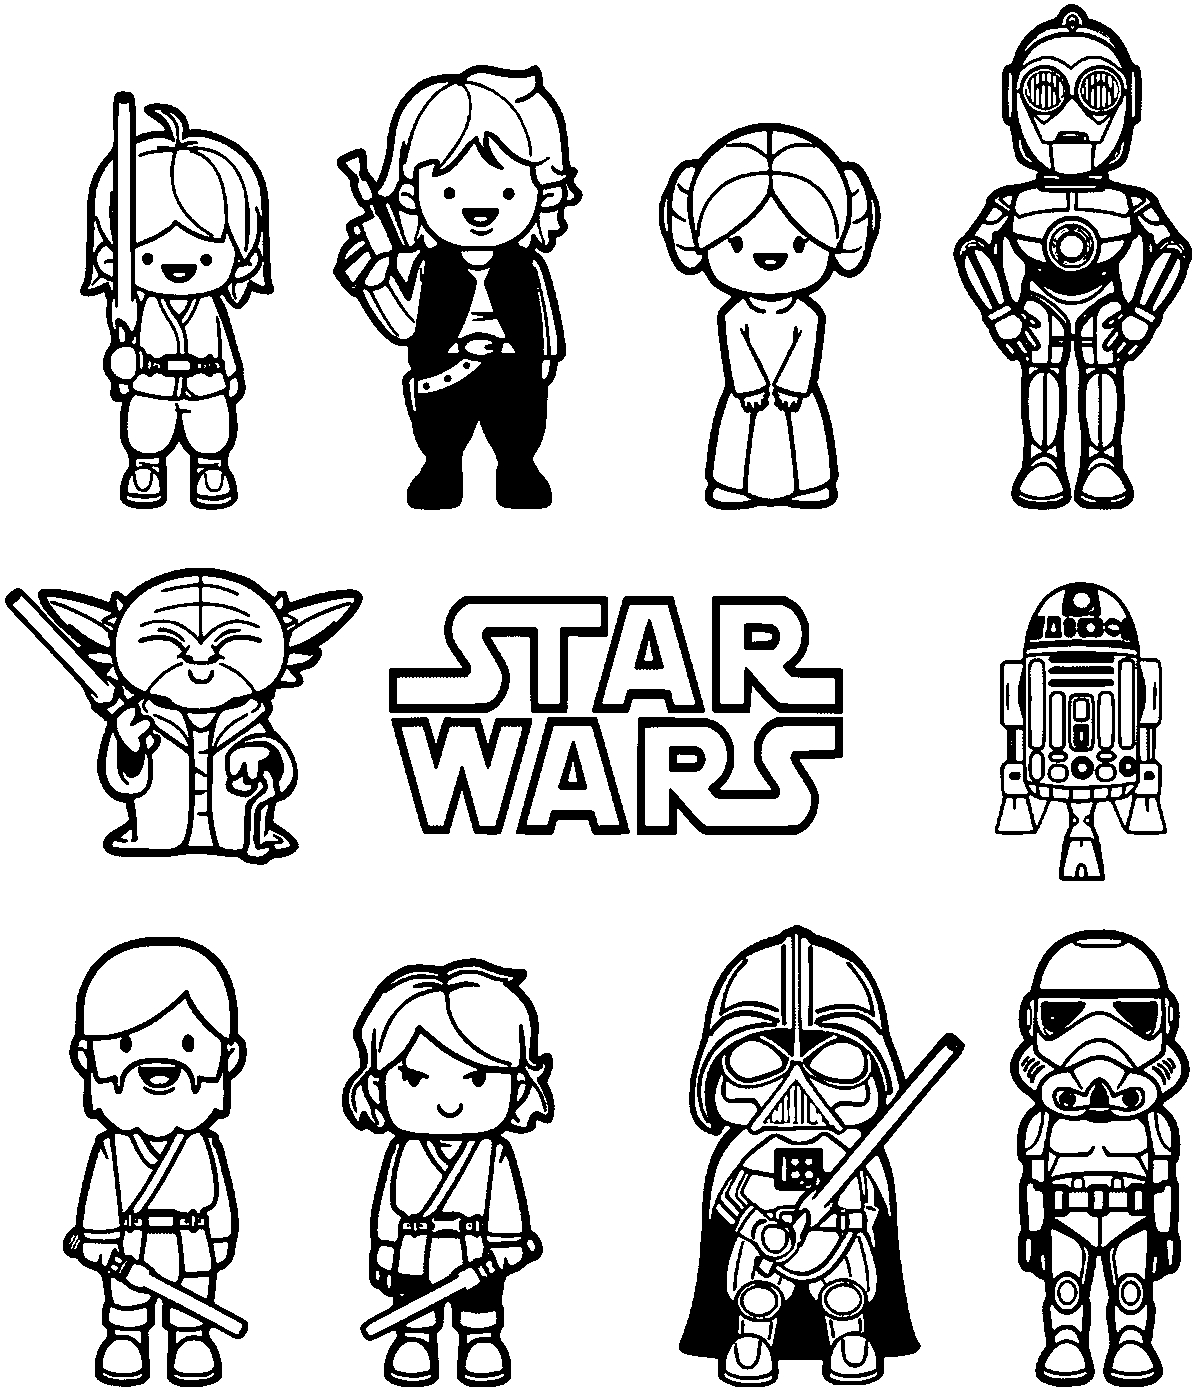 star wars coloring book meme 10 best free printable baby yoda coloring pages for kids coloring meme book star wars